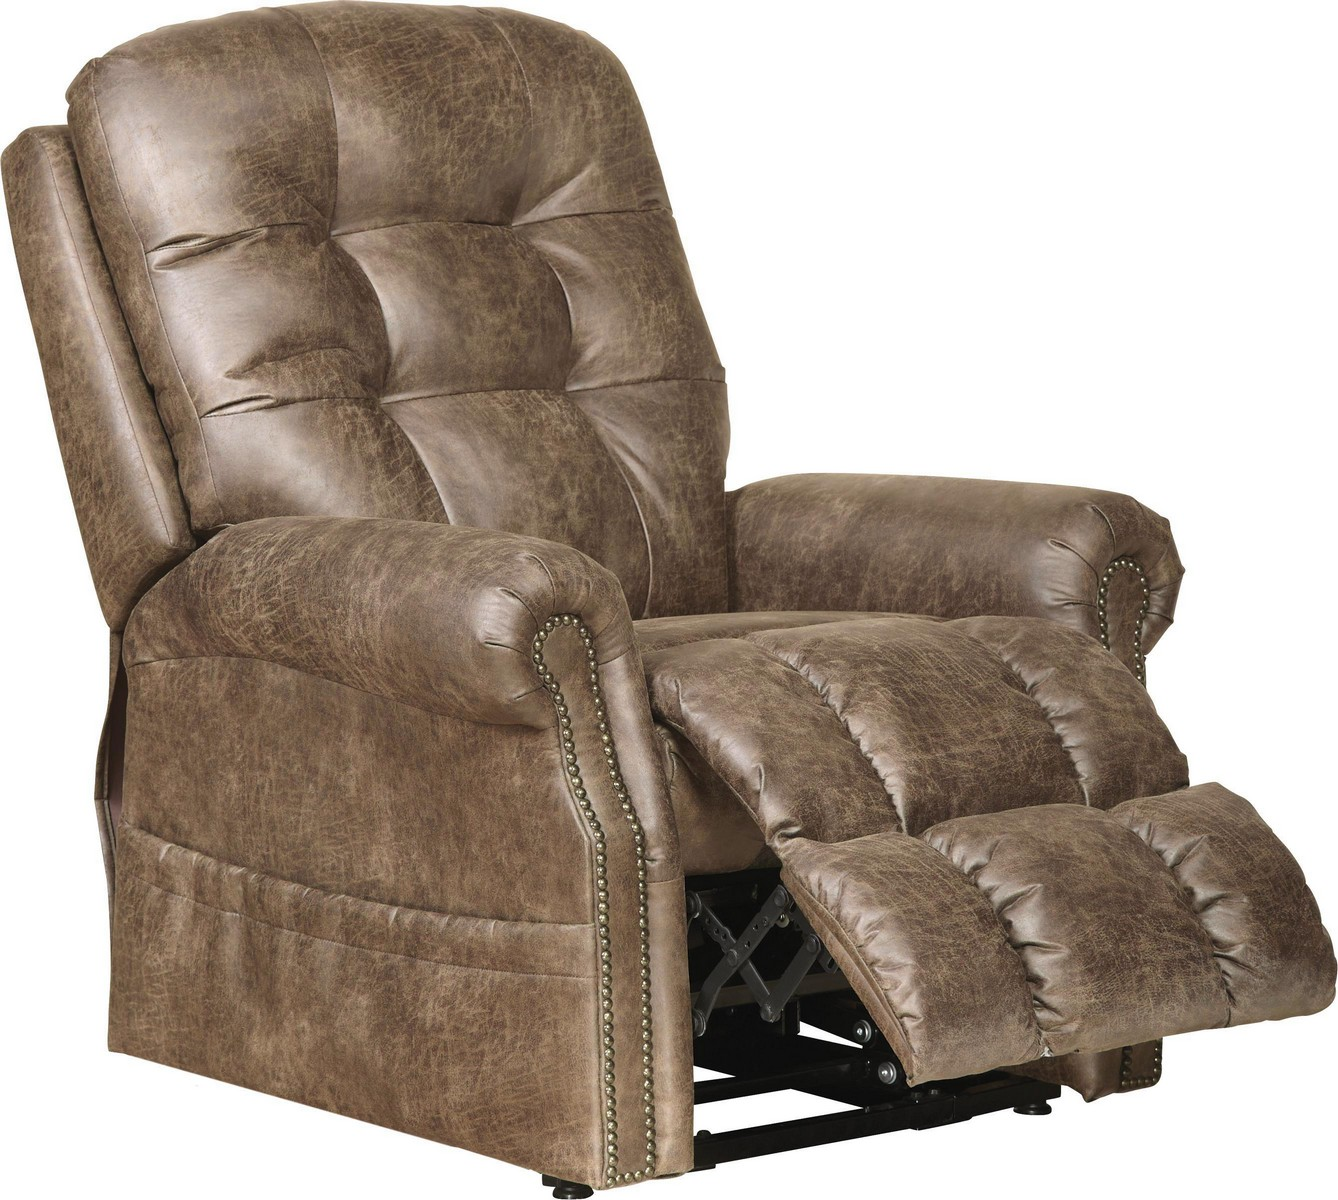 Catnapper Ramsey Power Lift Lay Flat Recliner With Heat And Massage Silt Cn 4857 Silt At